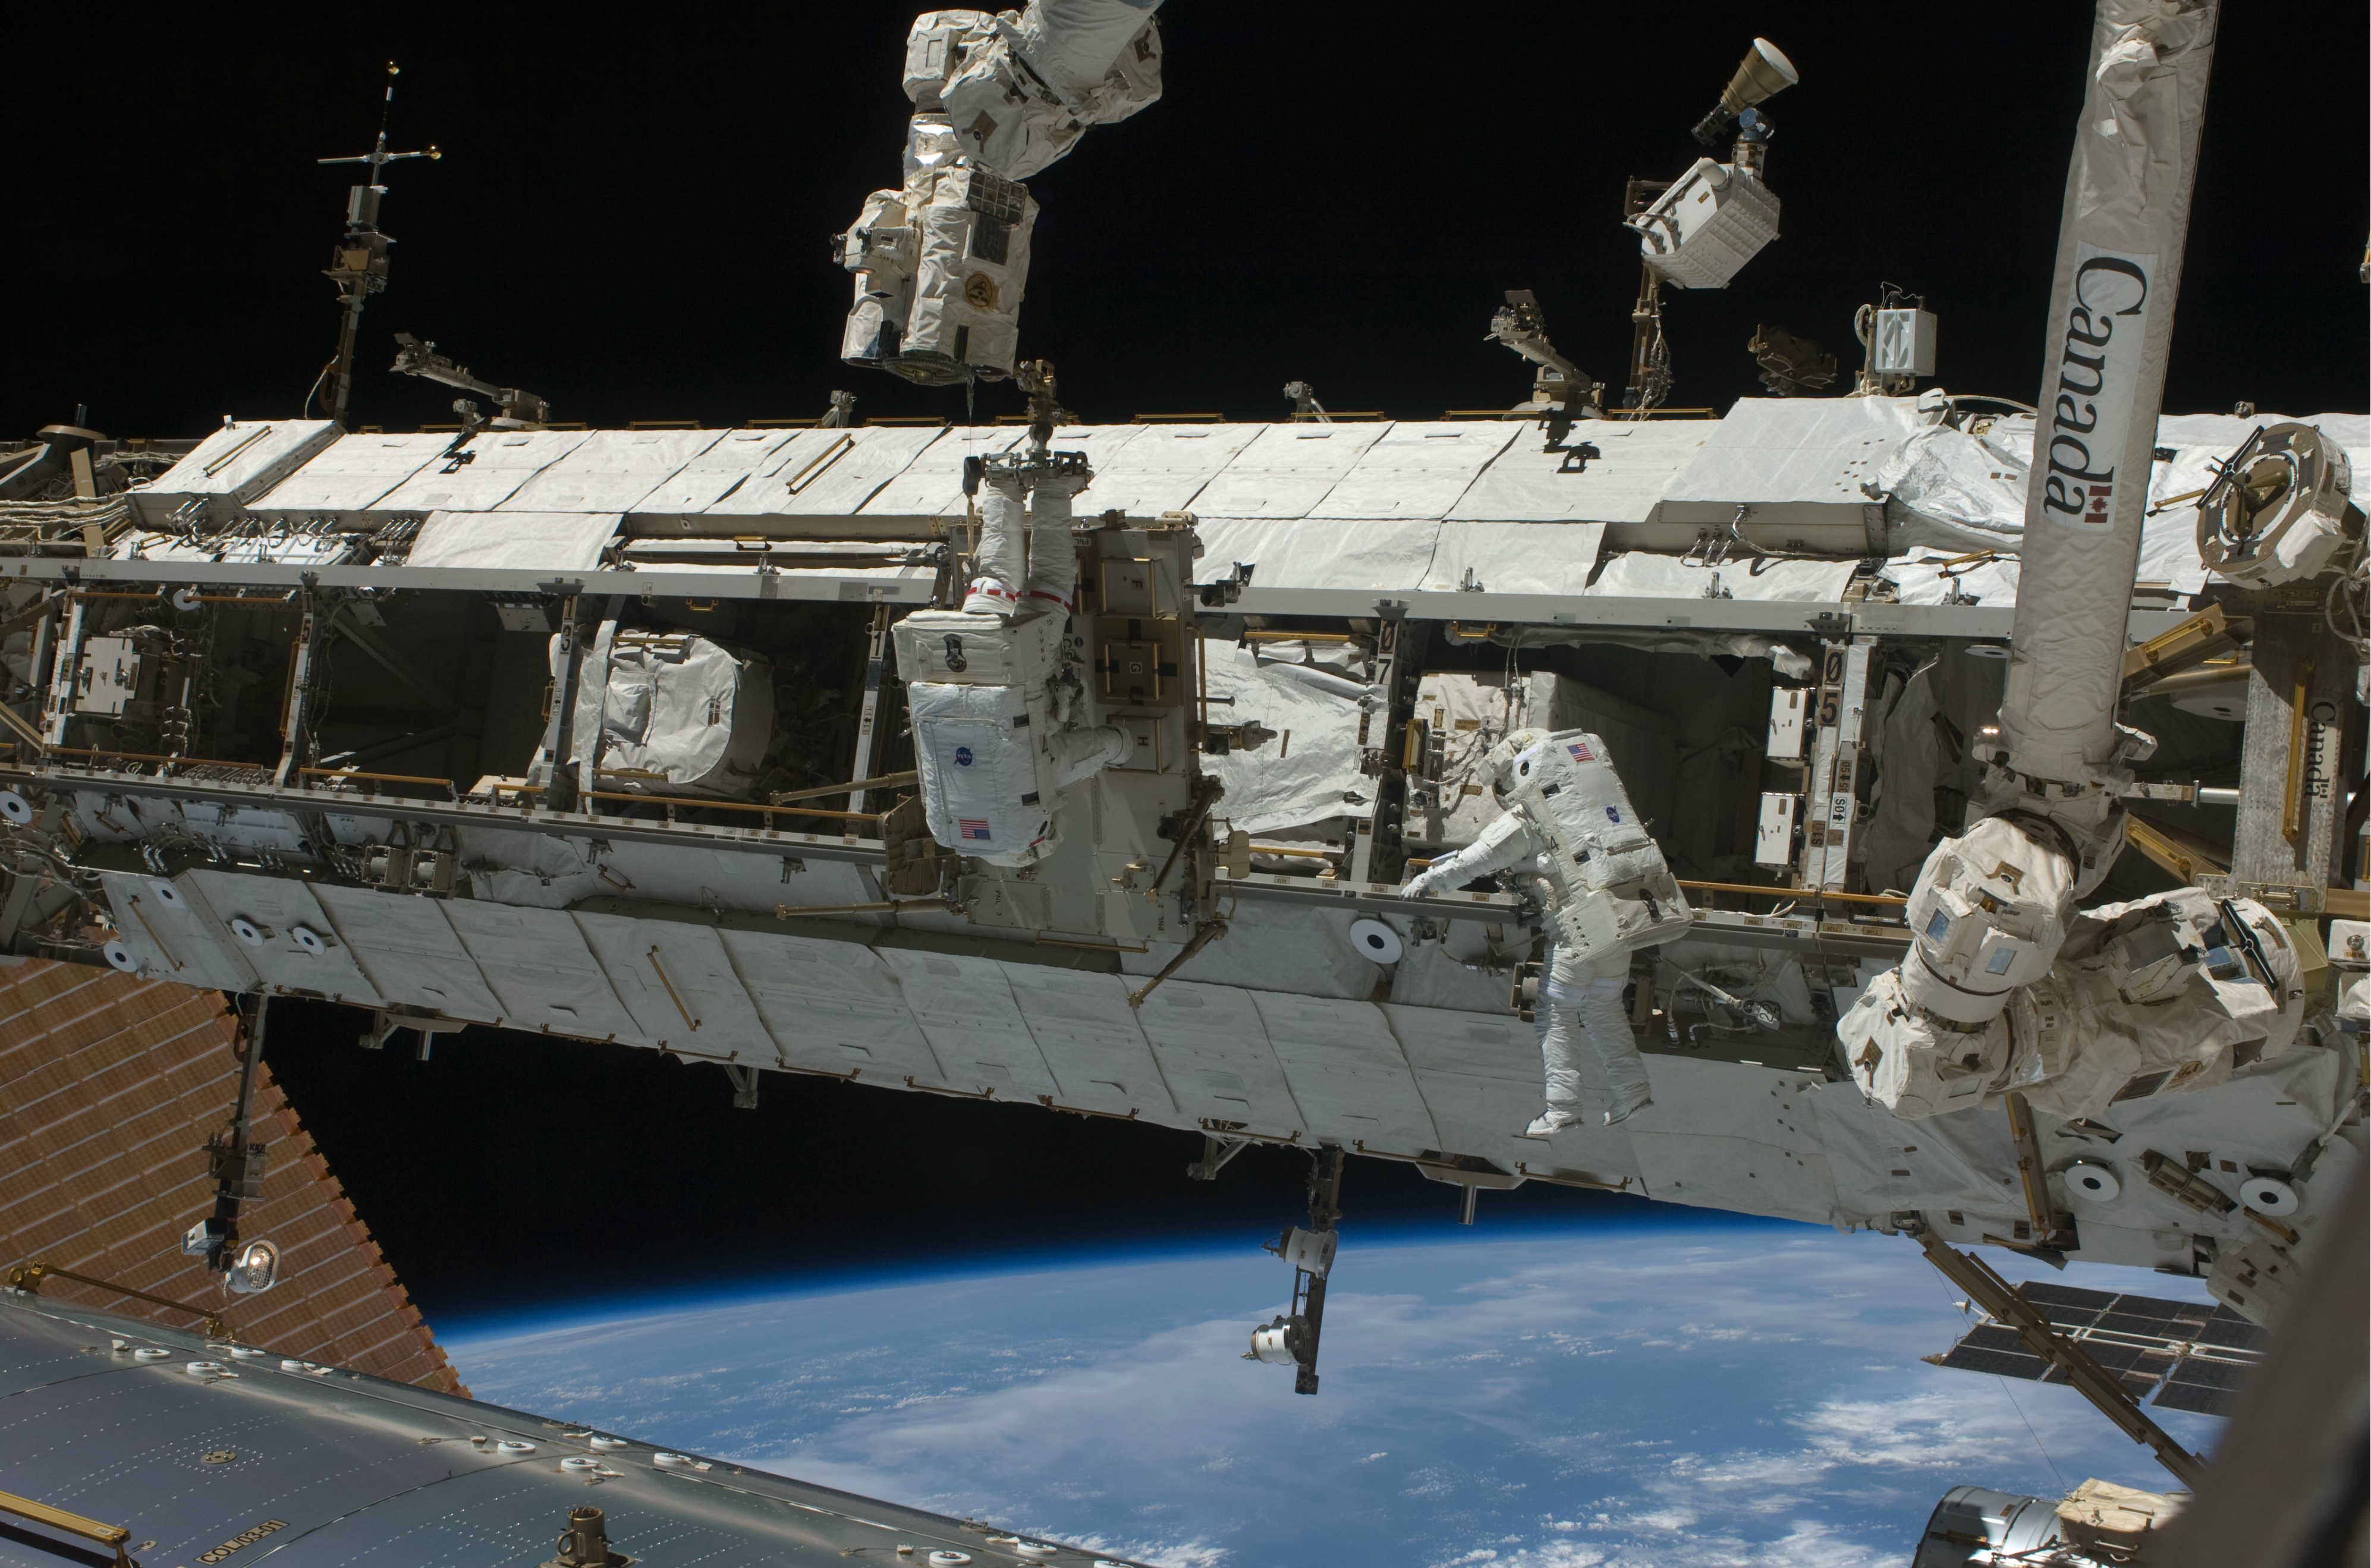 NASA Astronauts to Conduct Spacewalk as Early as Monday ...